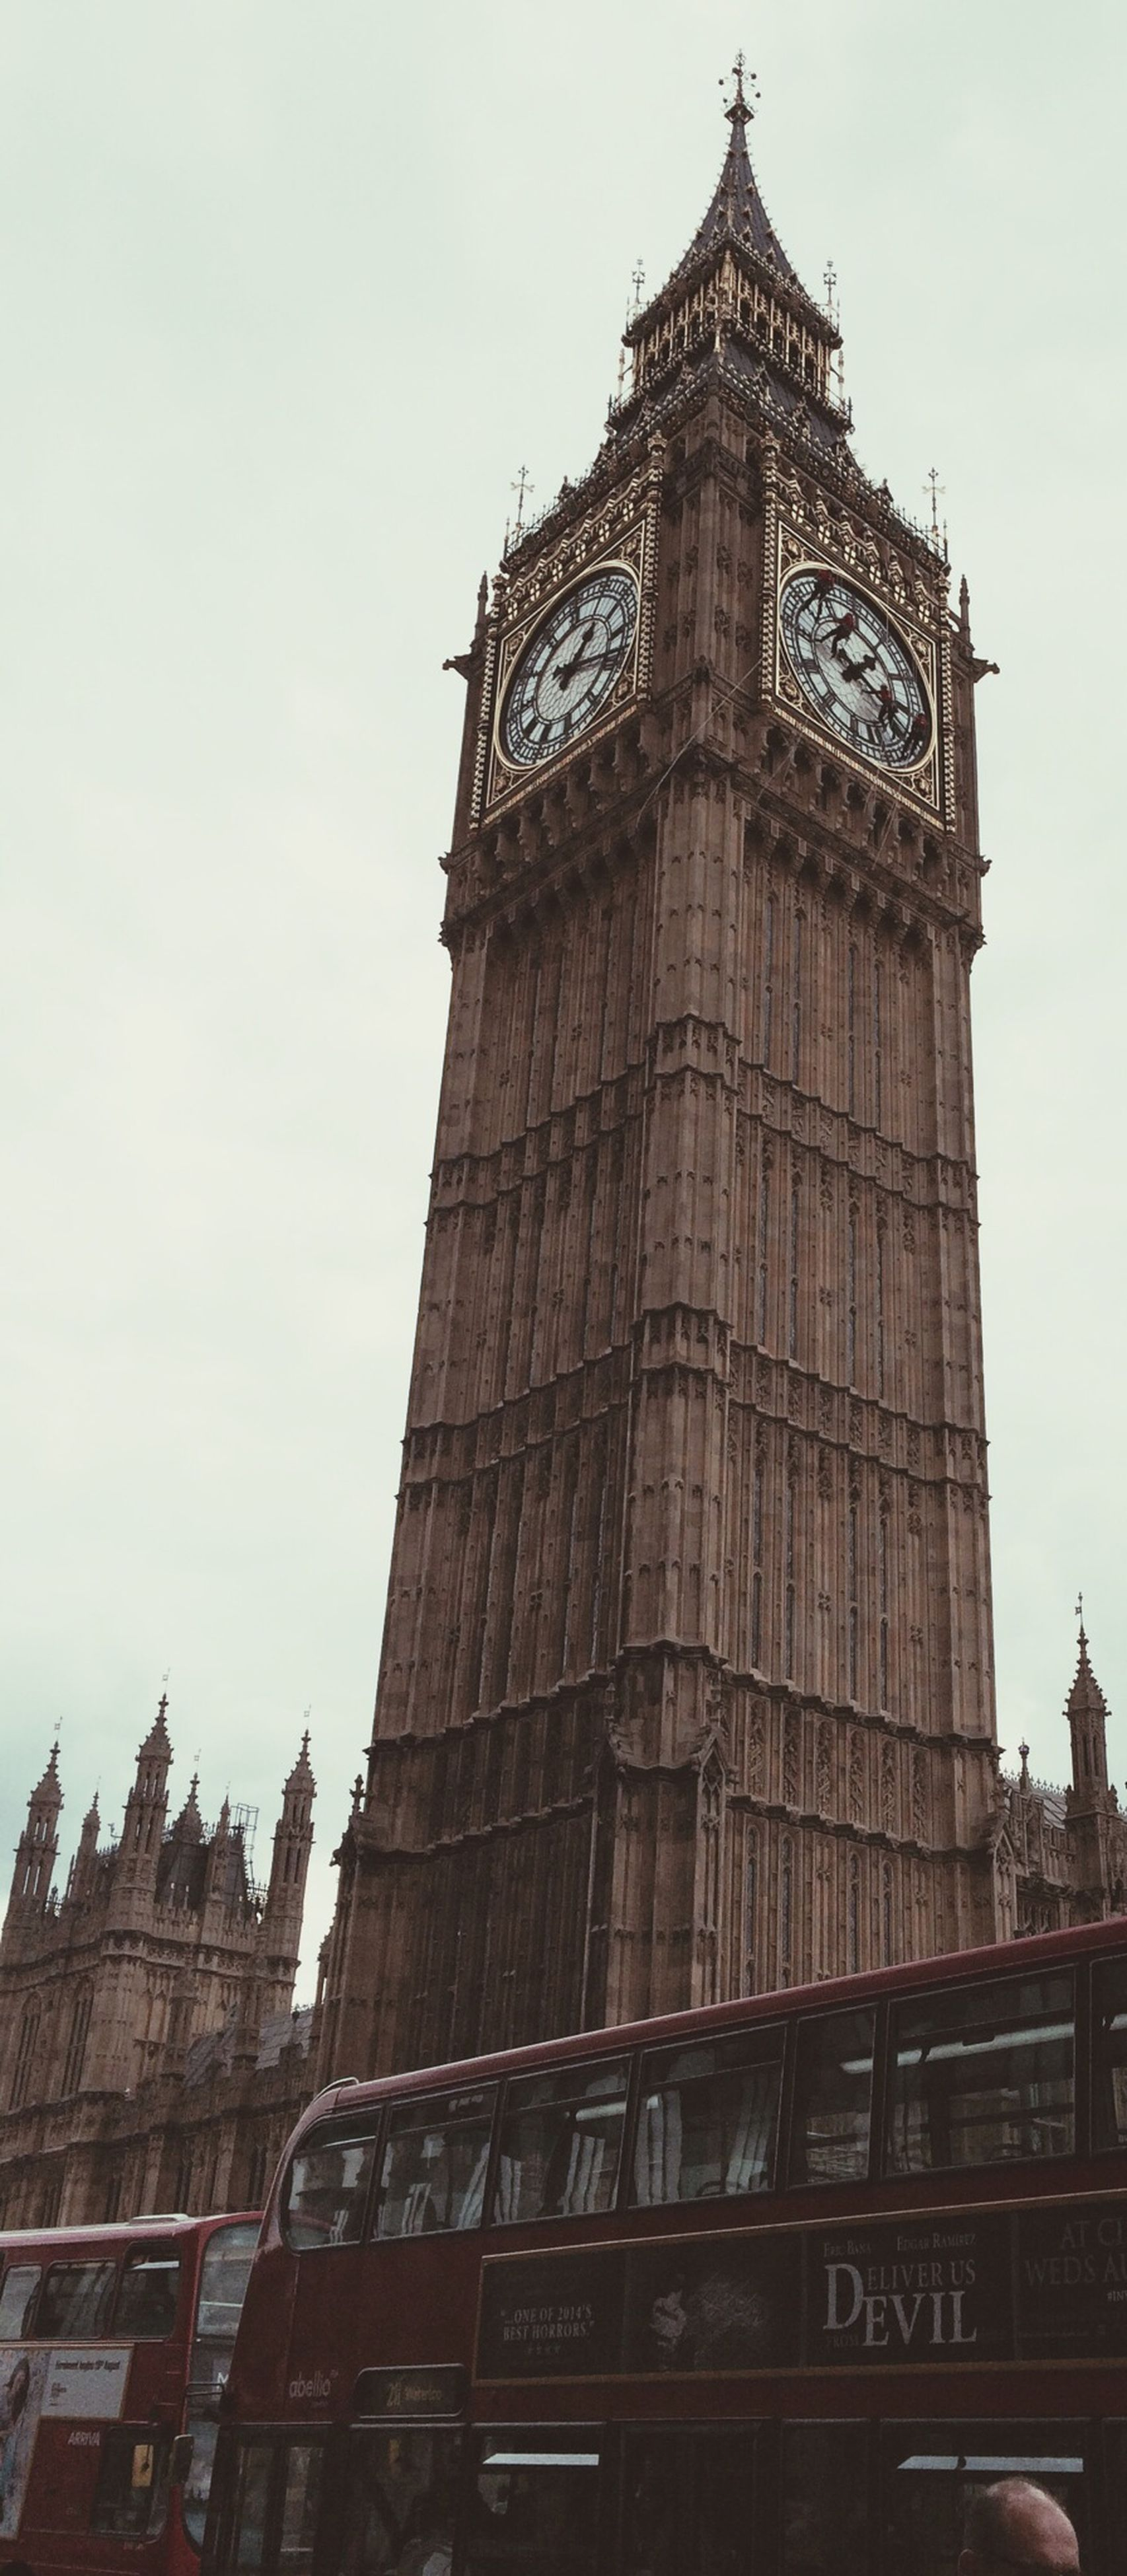 architecture, built structure, building exterior, low angle view, tower, famous place, travel destinations, clock tower, tall - high, international landmark, tourism, capital cities, travel, clear sky, history, city, religion, big ben, sky, place of worship